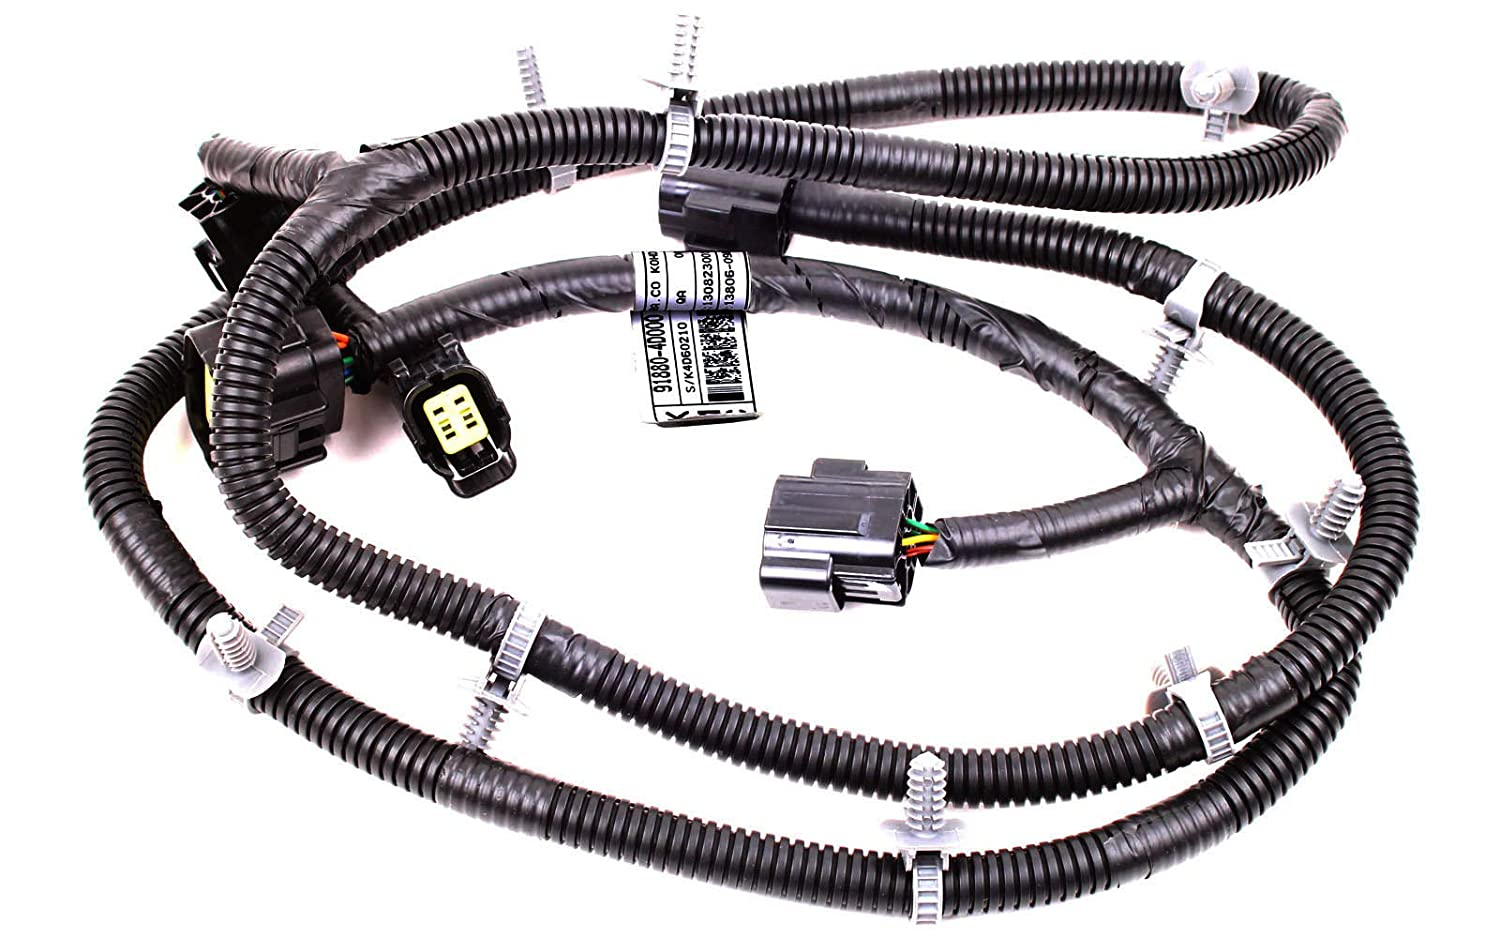 Genuine Hyundai 91880-4D000 Extension Wiring Assembly for Backup Warning System